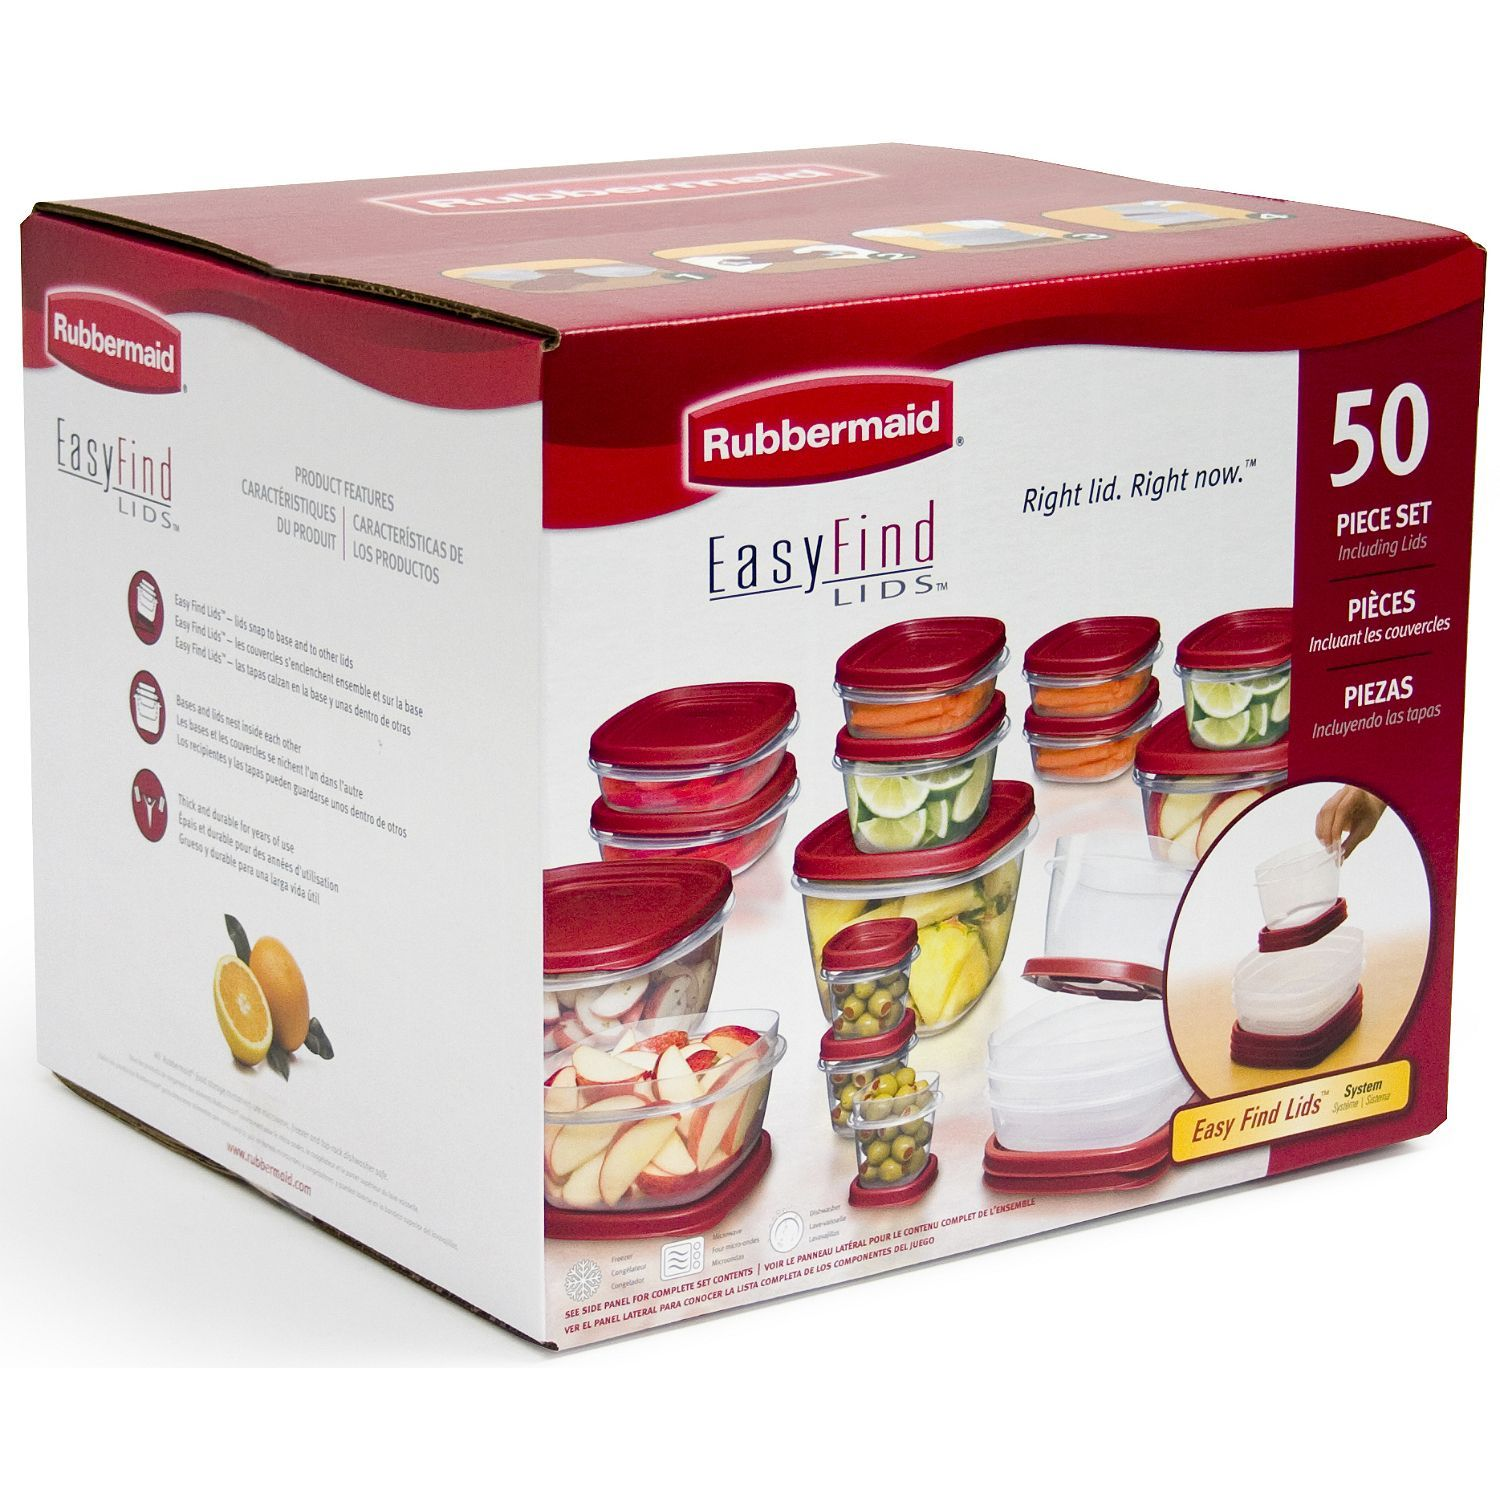 Rubbermaid 50 pc Easy Find Food Plastic Storage Containers Set Snap on Lids